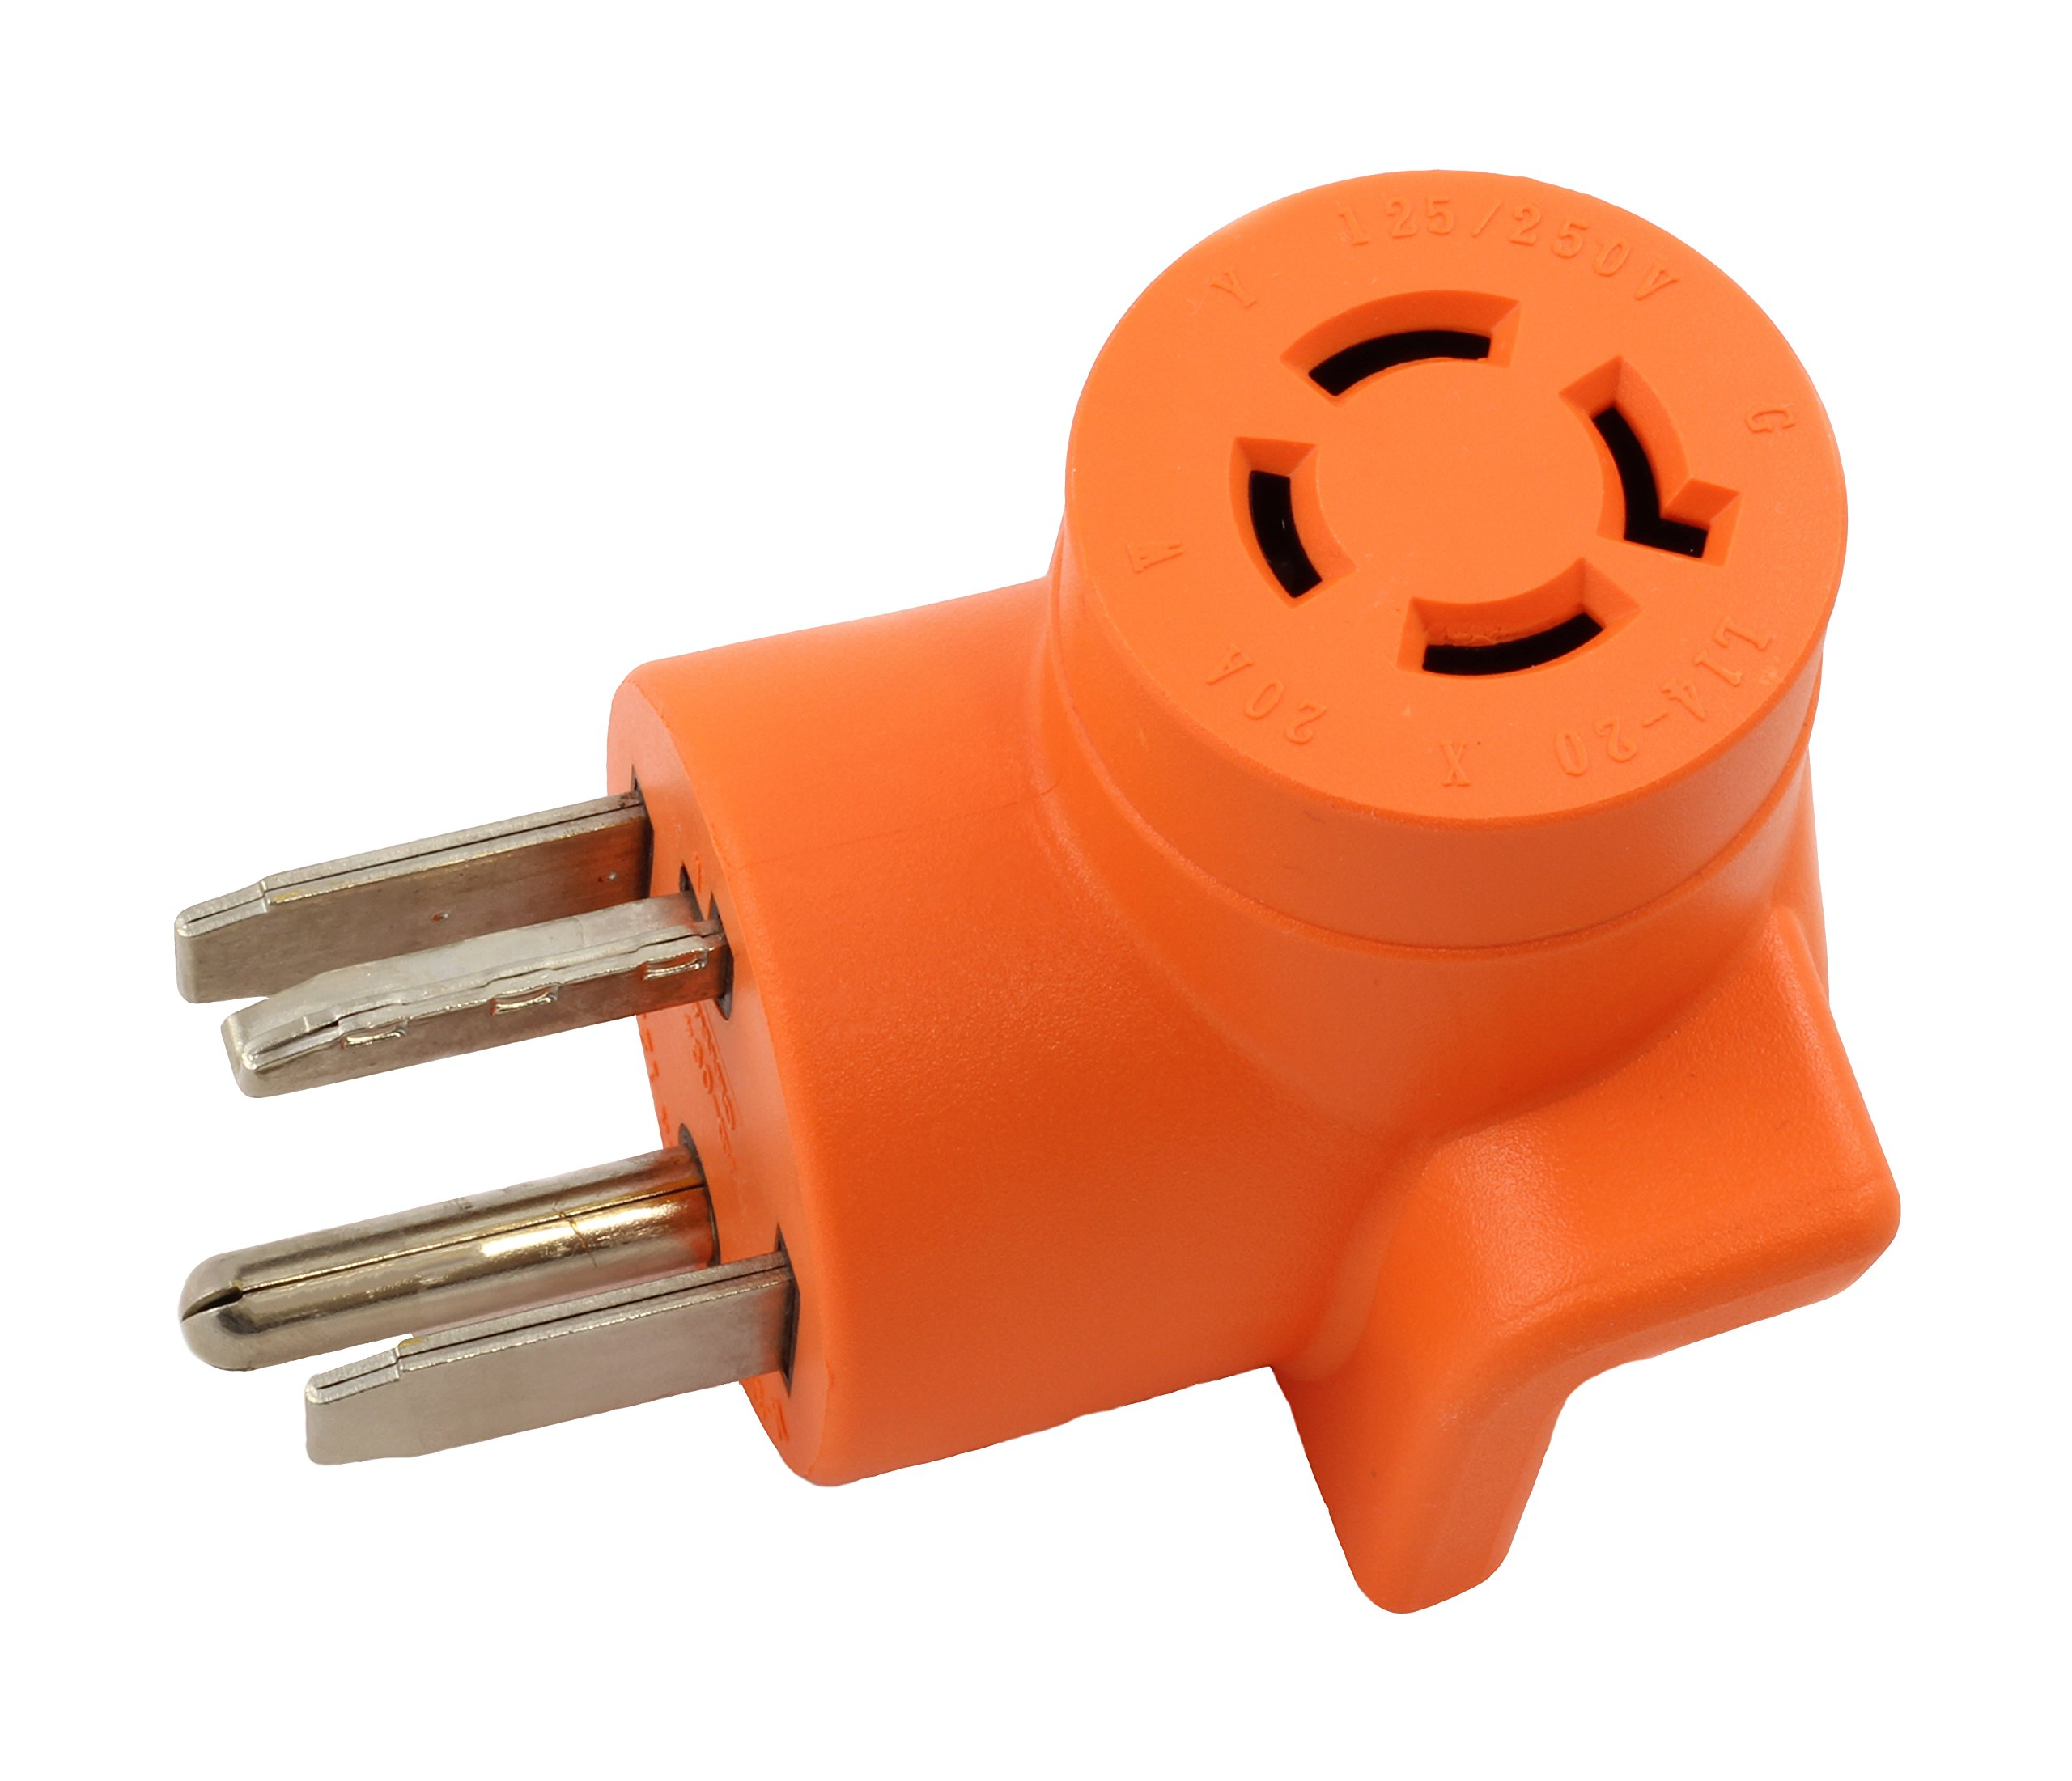 AC WORKS [AD1430L1420] Dryer Outlet Adapter 4-Prong Dryer 14-30P Plug to 4-Prong 20Amp Locking L14-20R Adapter